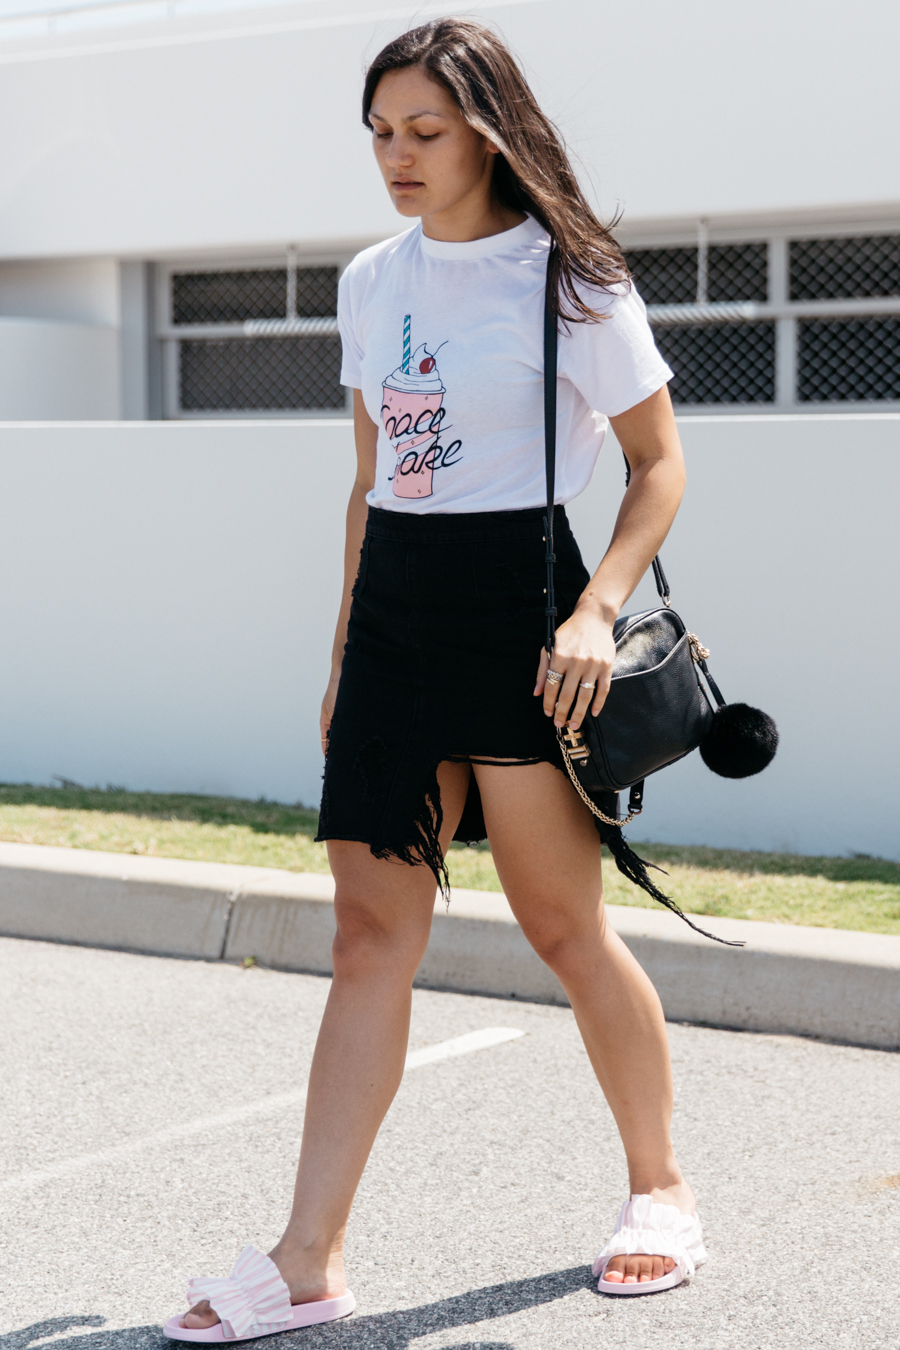 Space shake graphic tee outfit.